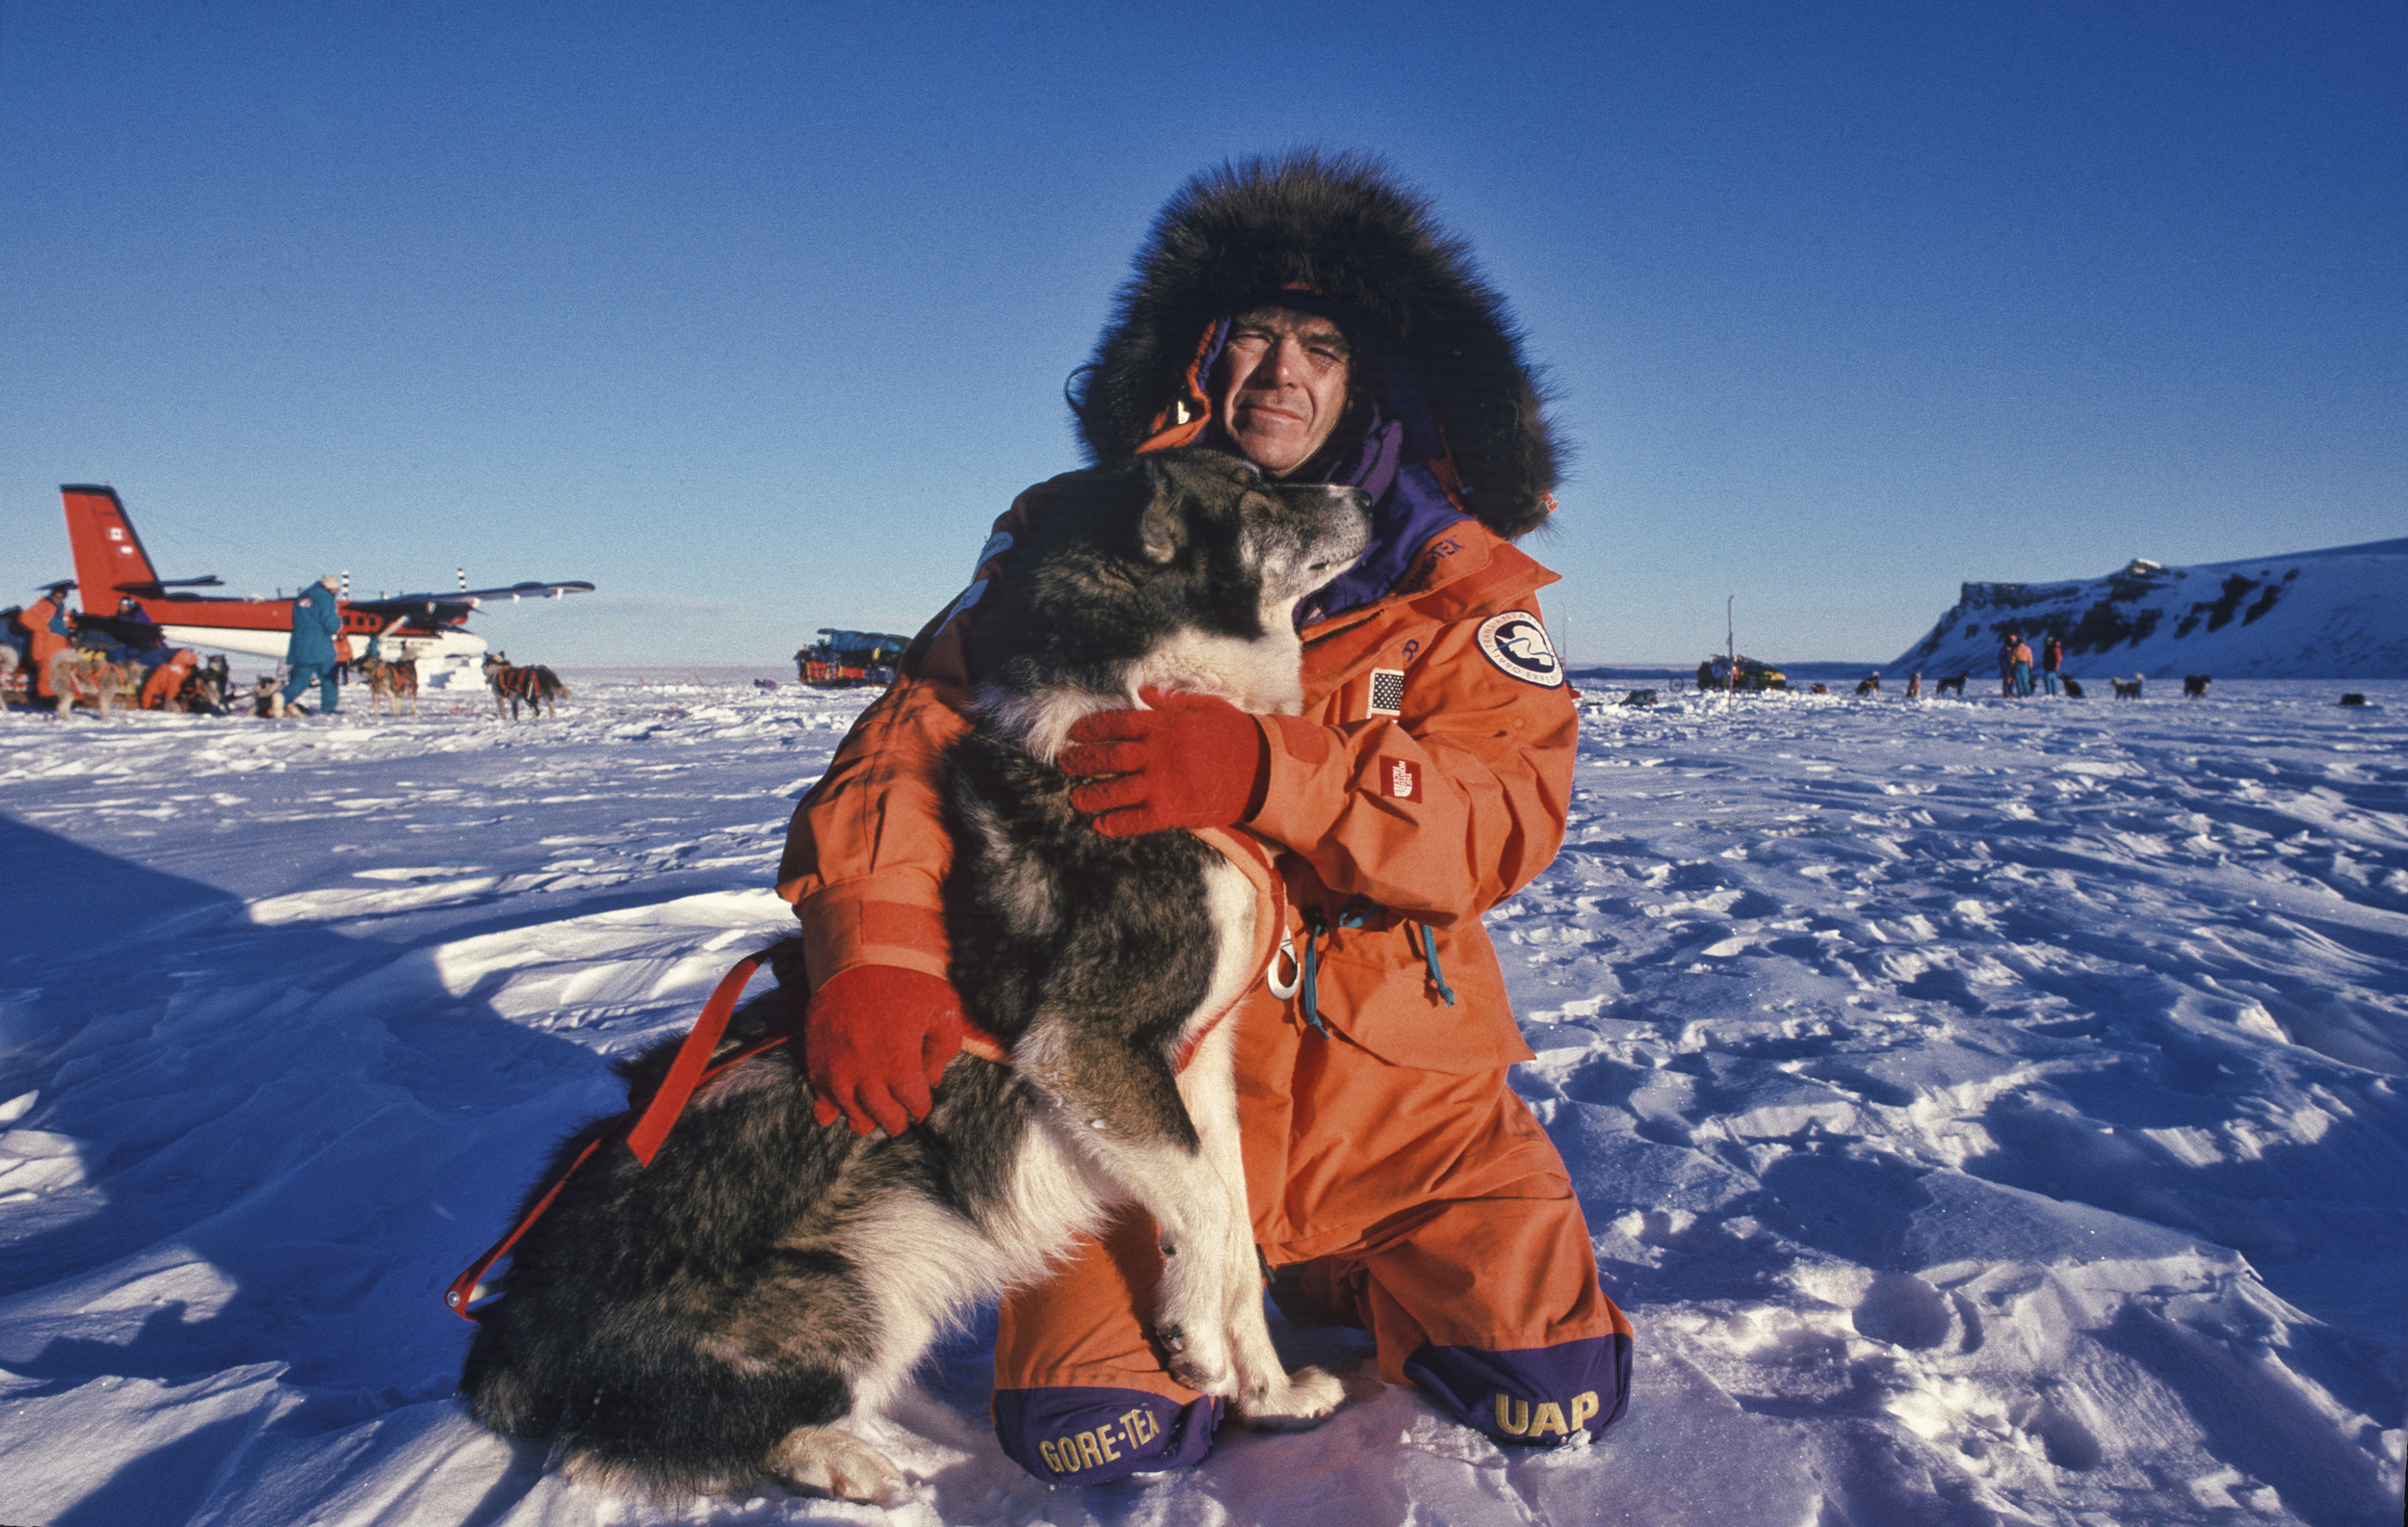 Will Steger as team prepares to head out on day one. July 1989.©Trans-Antarctica photo by Per Breiehagen